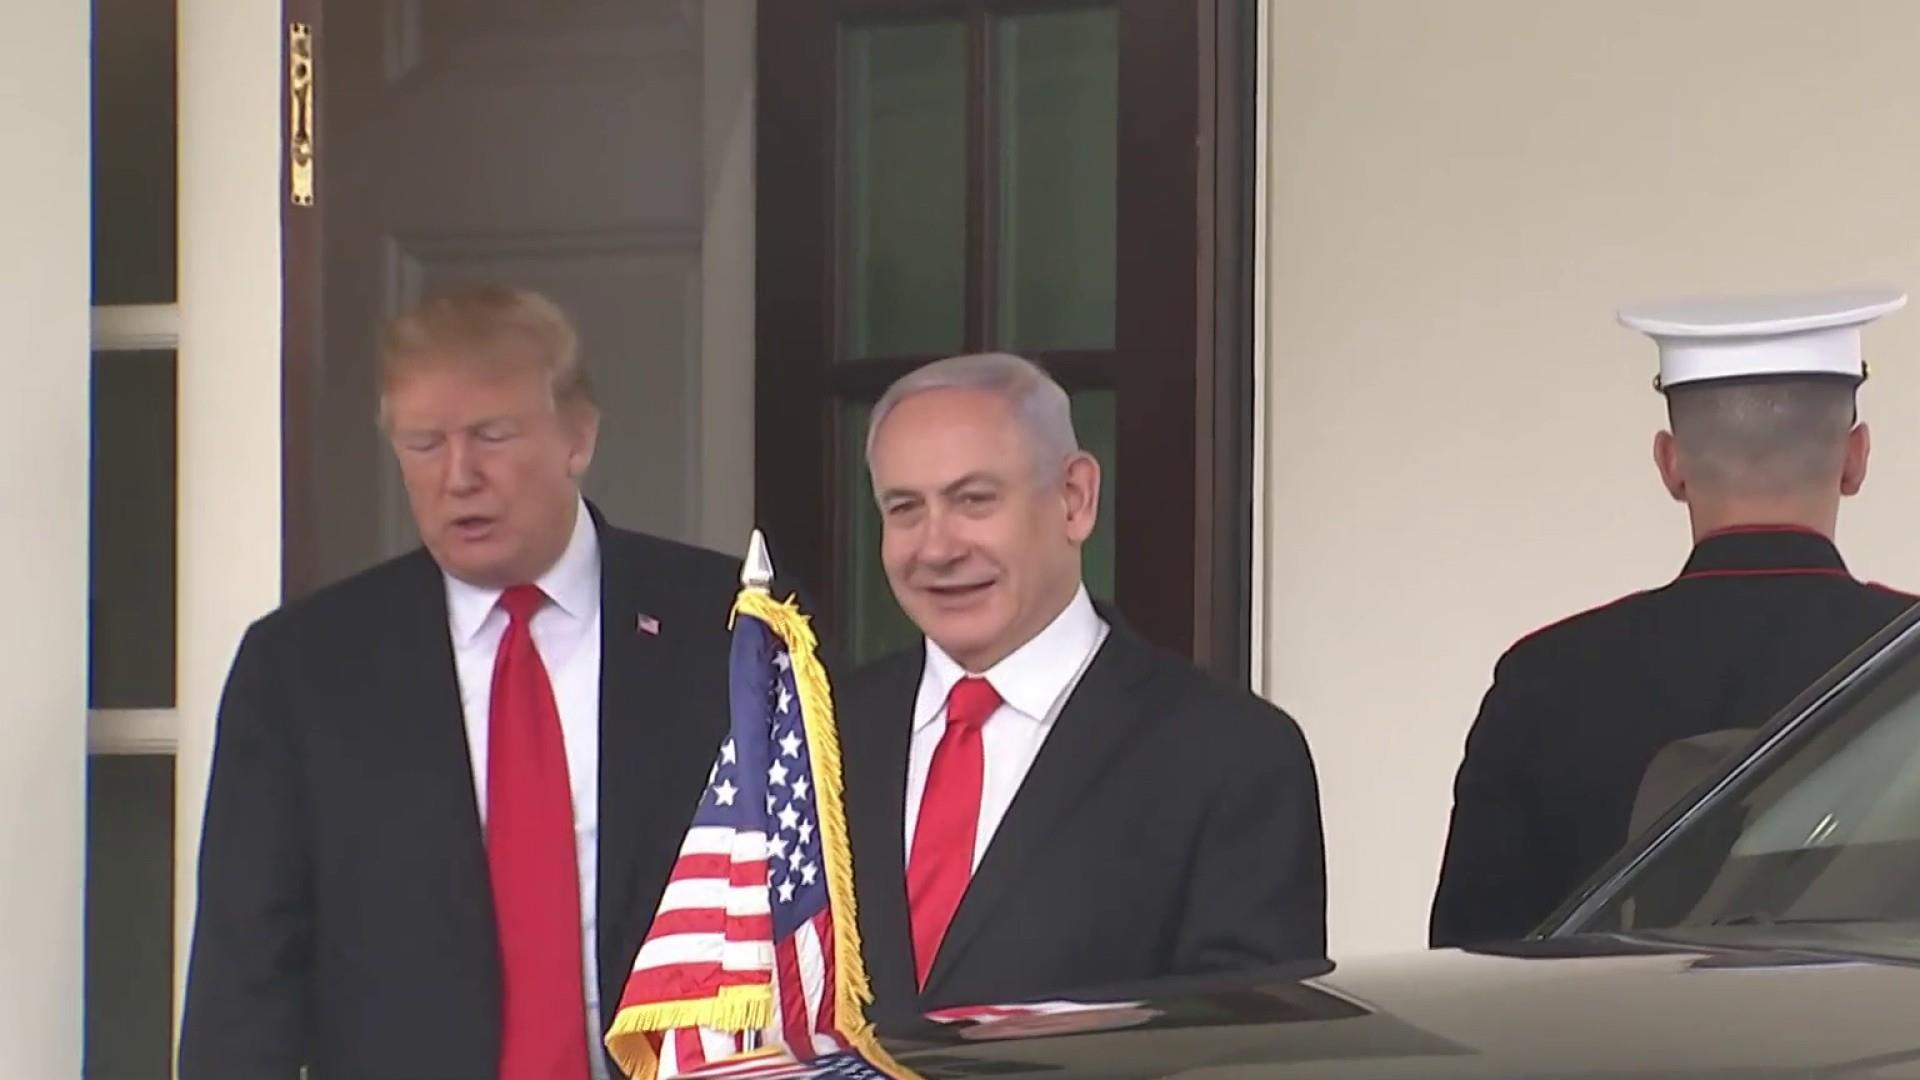 Chris Matthews: Netanyahu's victory shows that Trump can win in 2020